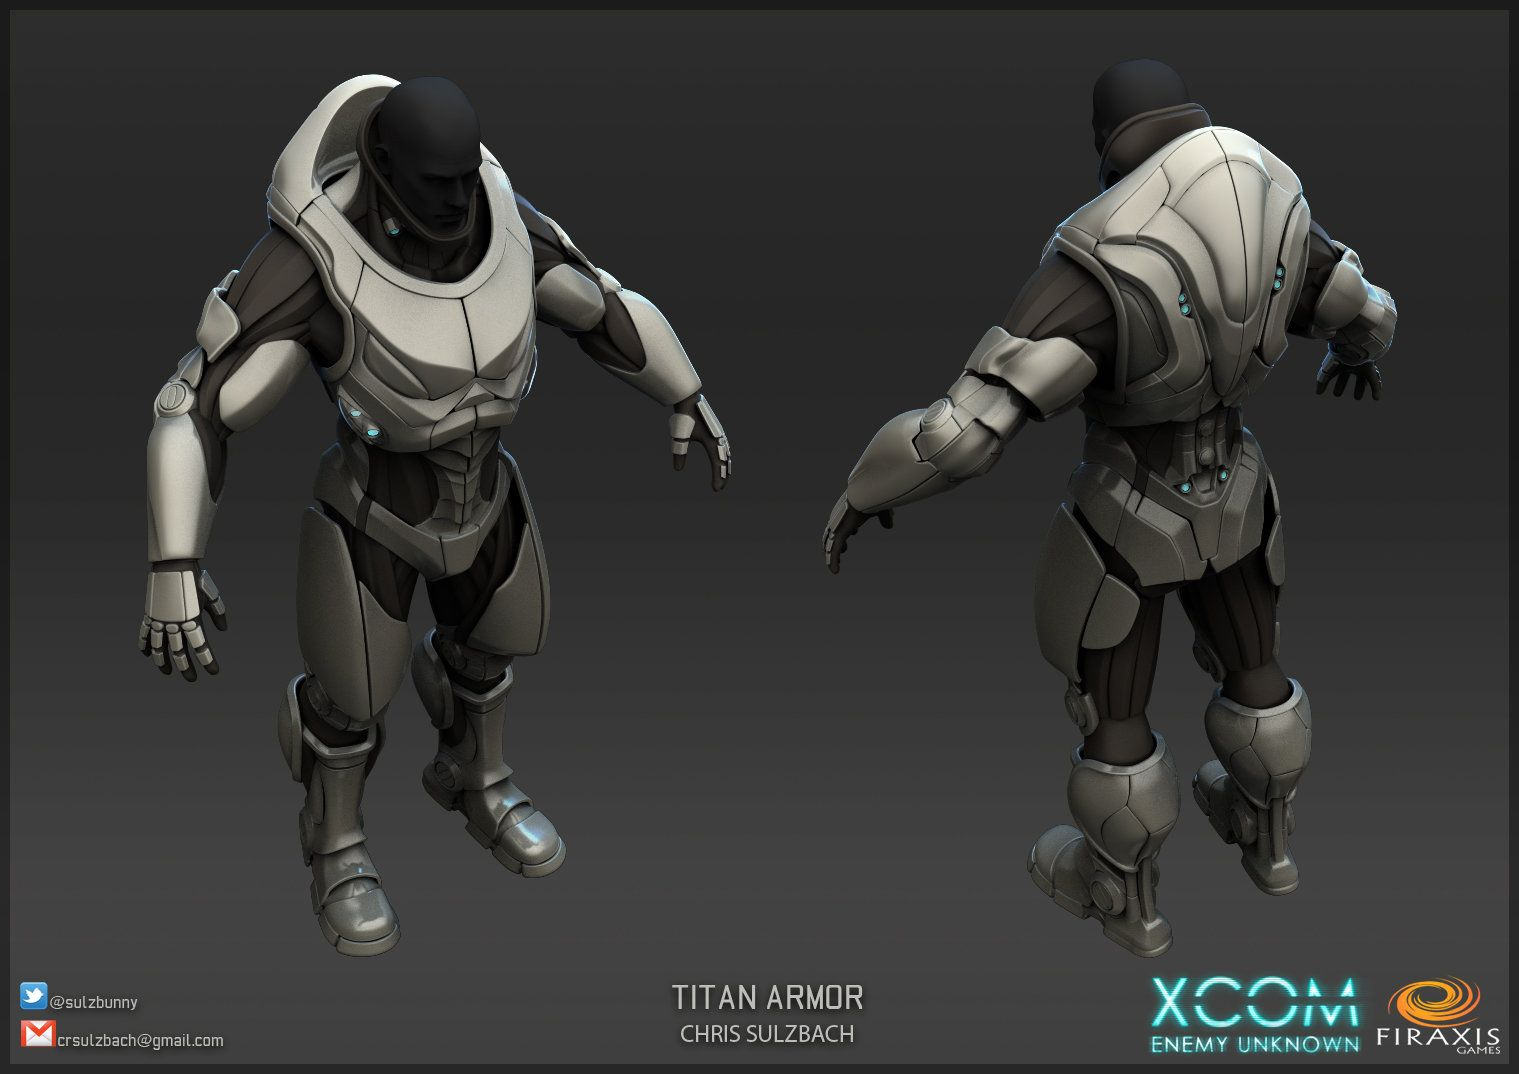 xcom: enemy unknown titan armor, chris sulzbach on artstation at